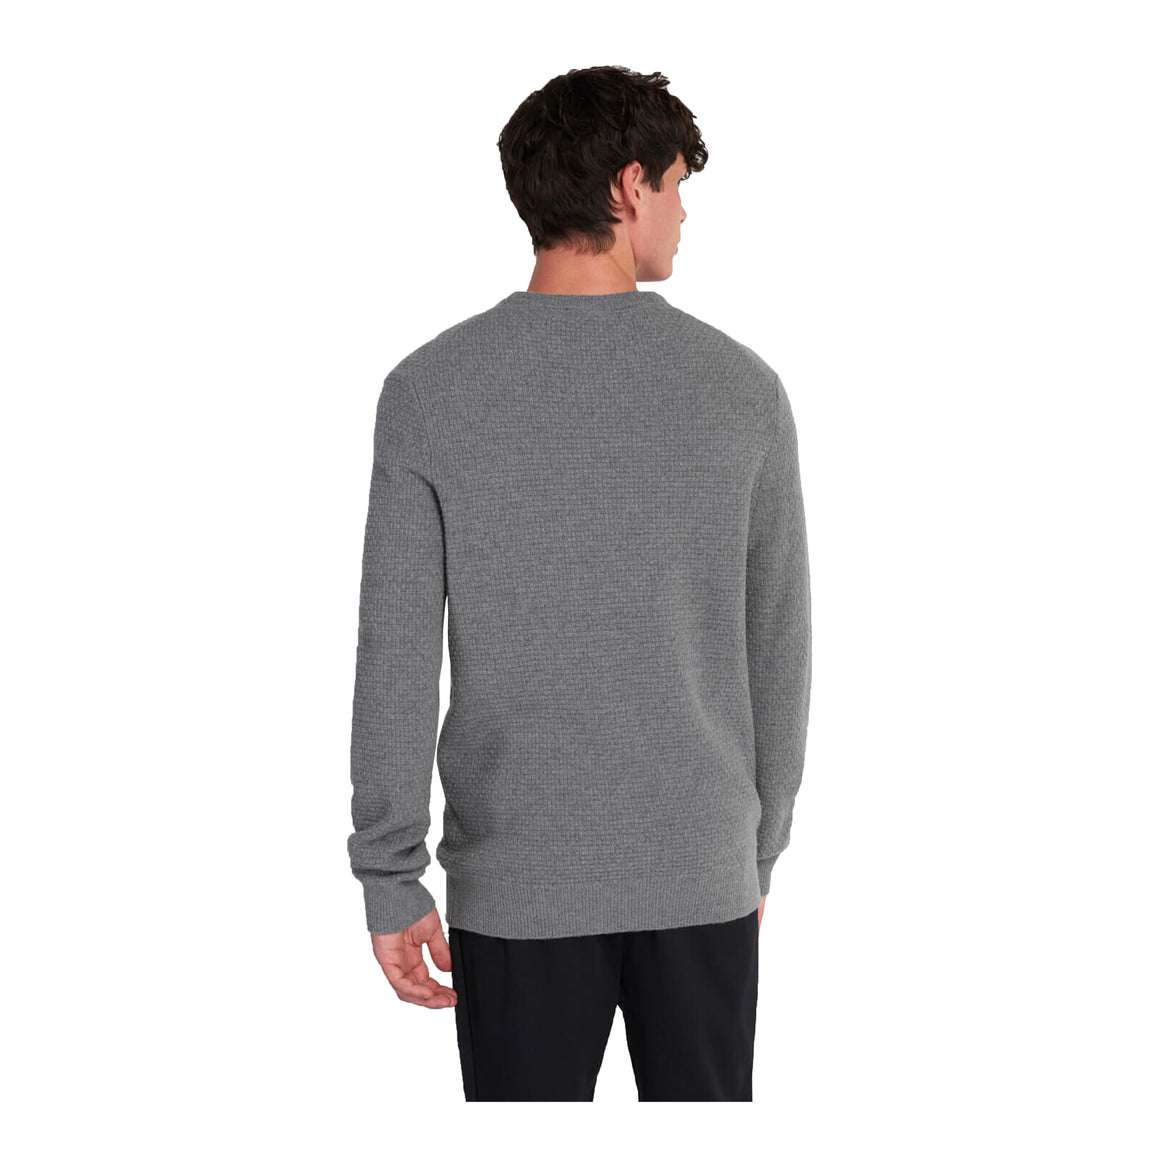 Basket Weave Jumper for Men in Grey